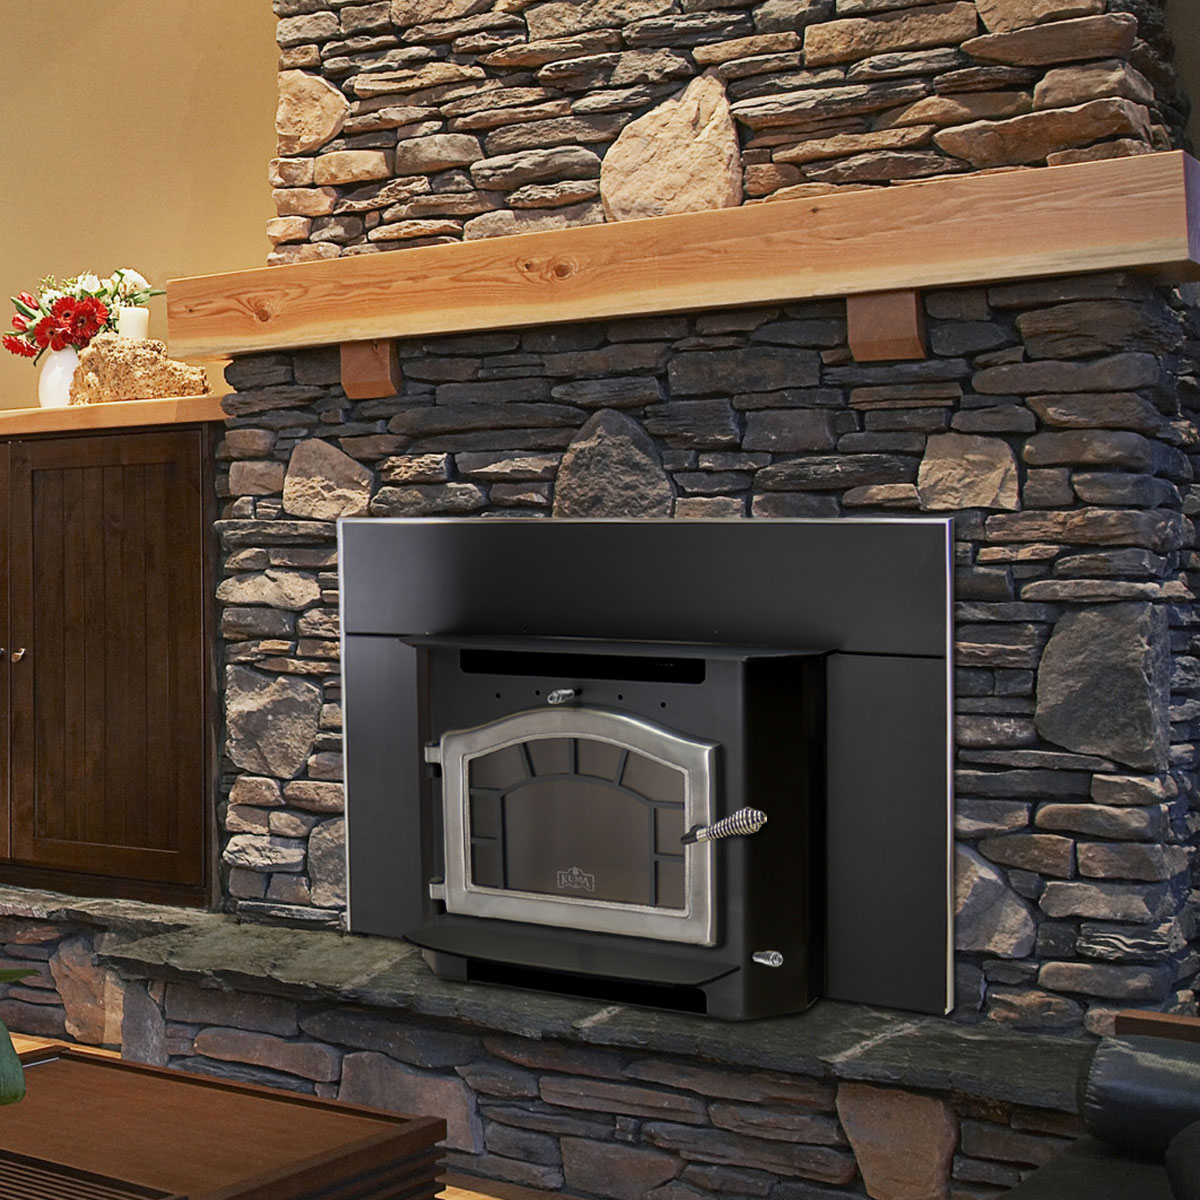 Kuma Sequoia wood fireplace insert, made in the USA